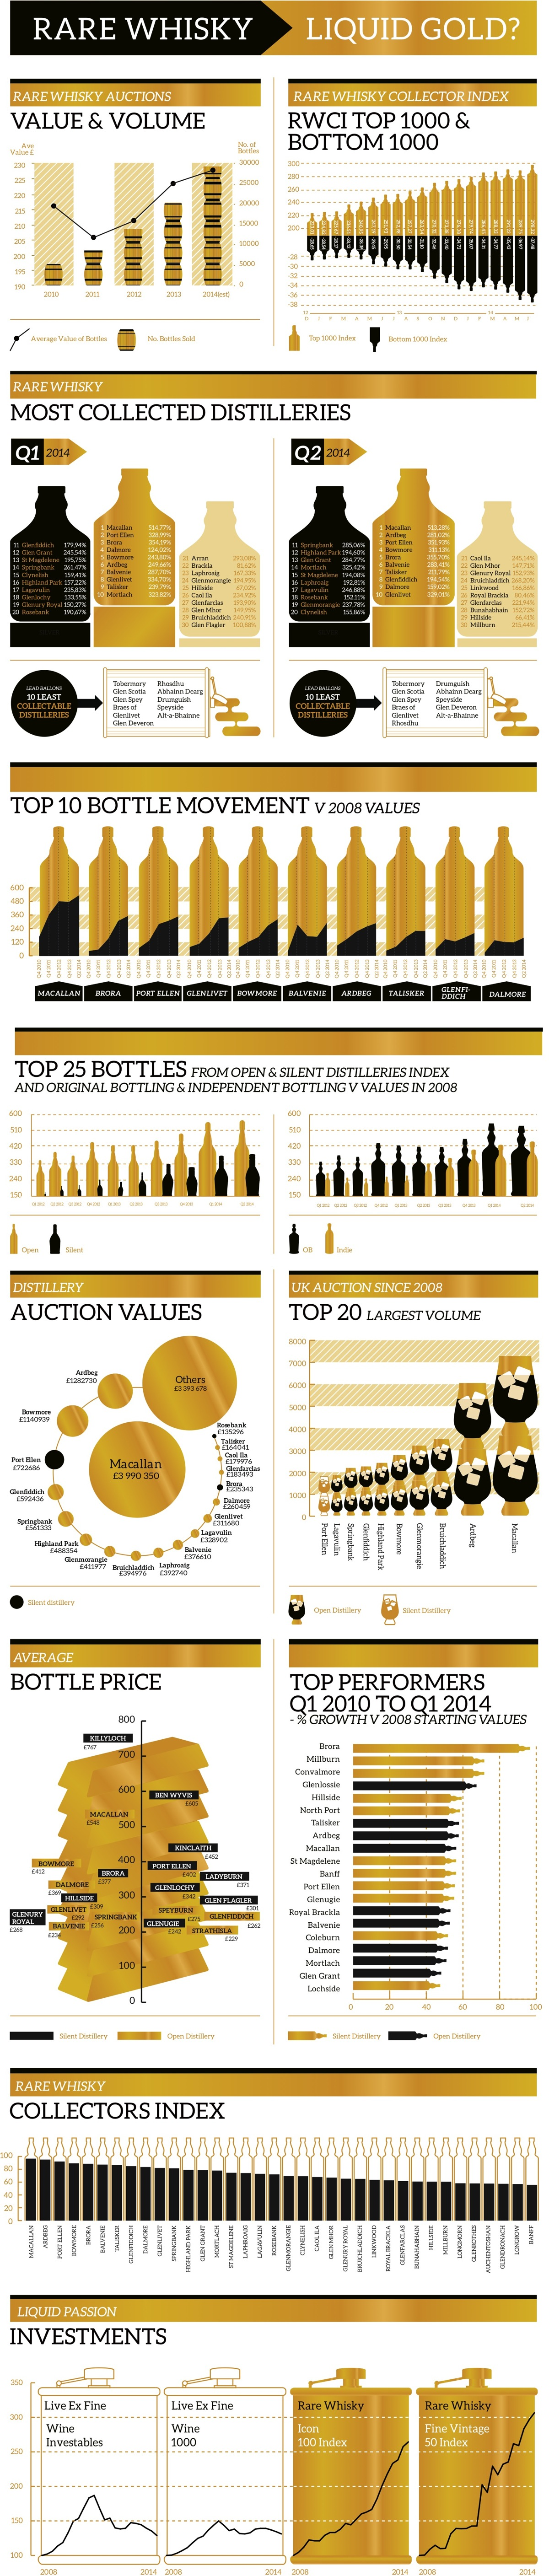 Rare Whisky 101 Infographic